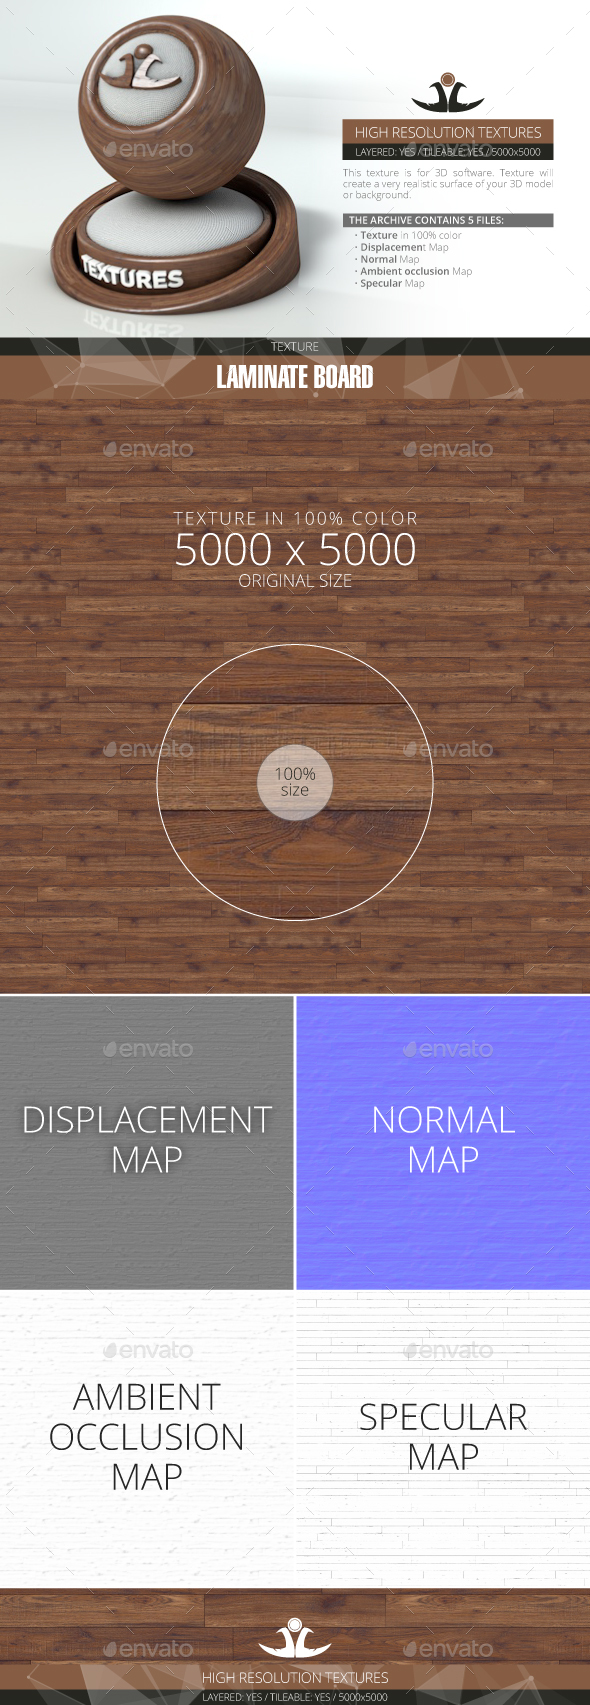 Laminate Board 24 - 3DOcean Item for Sale